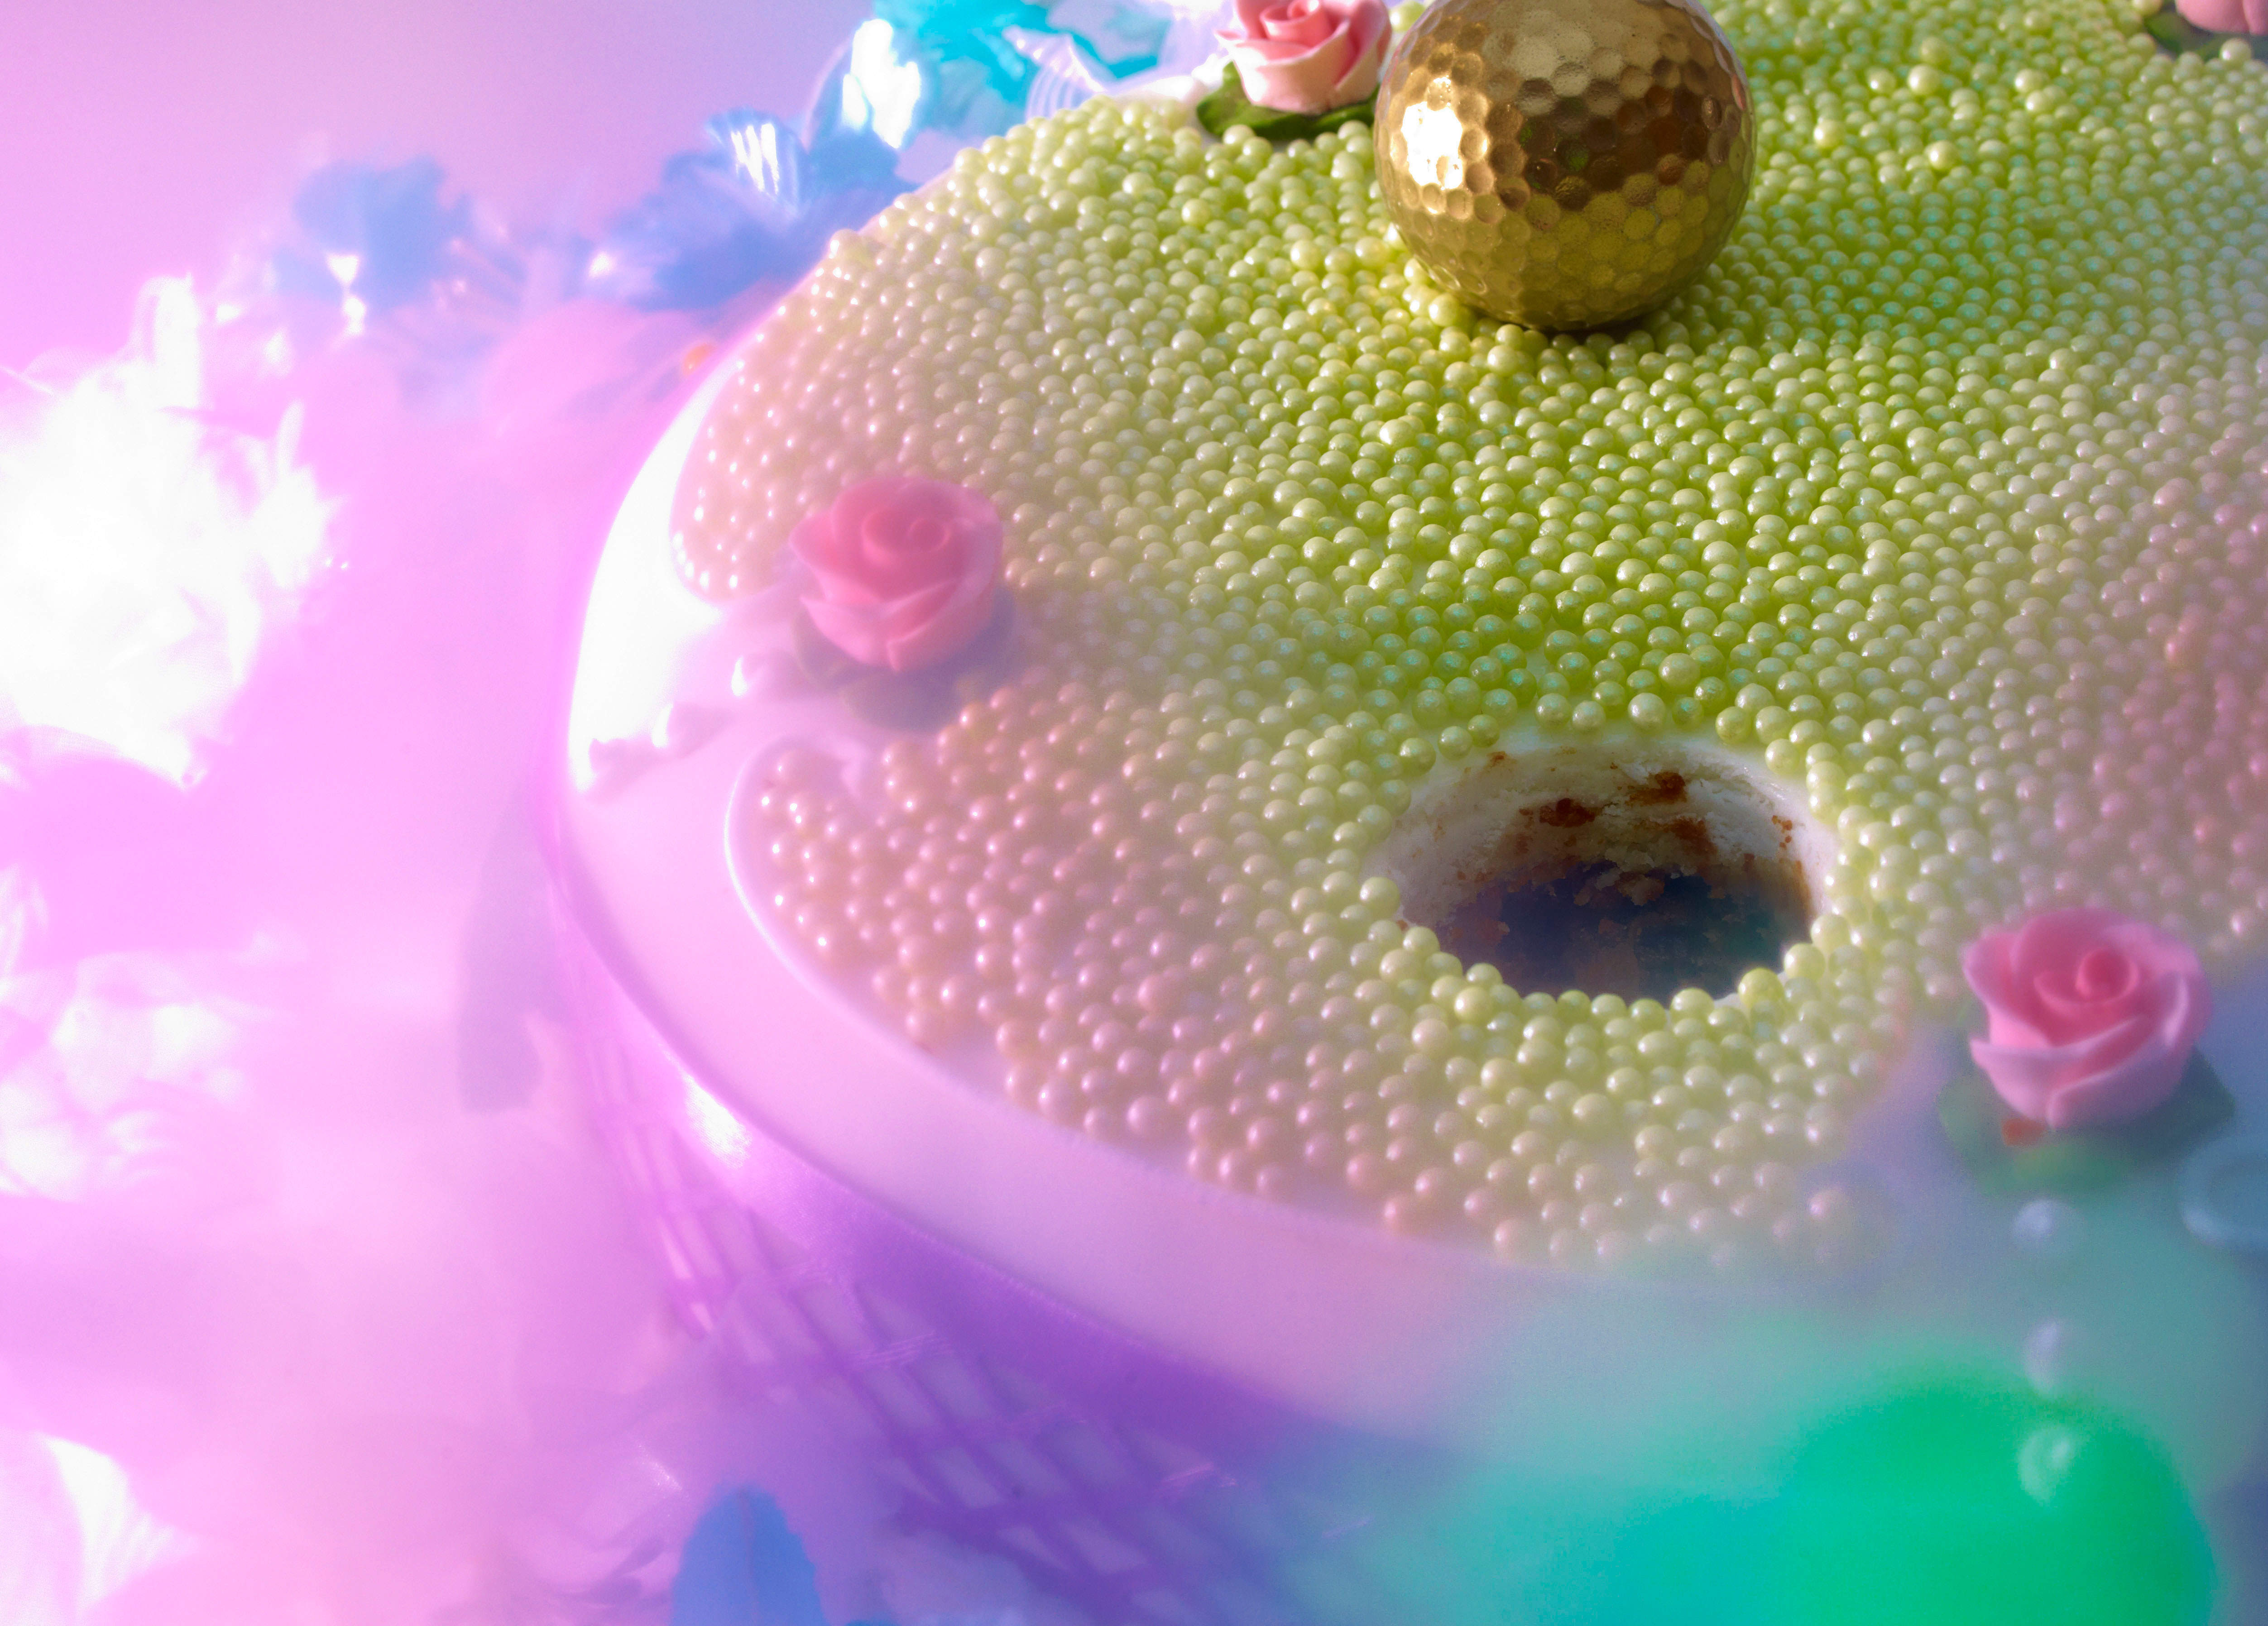 Meet Bompas & Parr, the real-life Willy Wonka of London